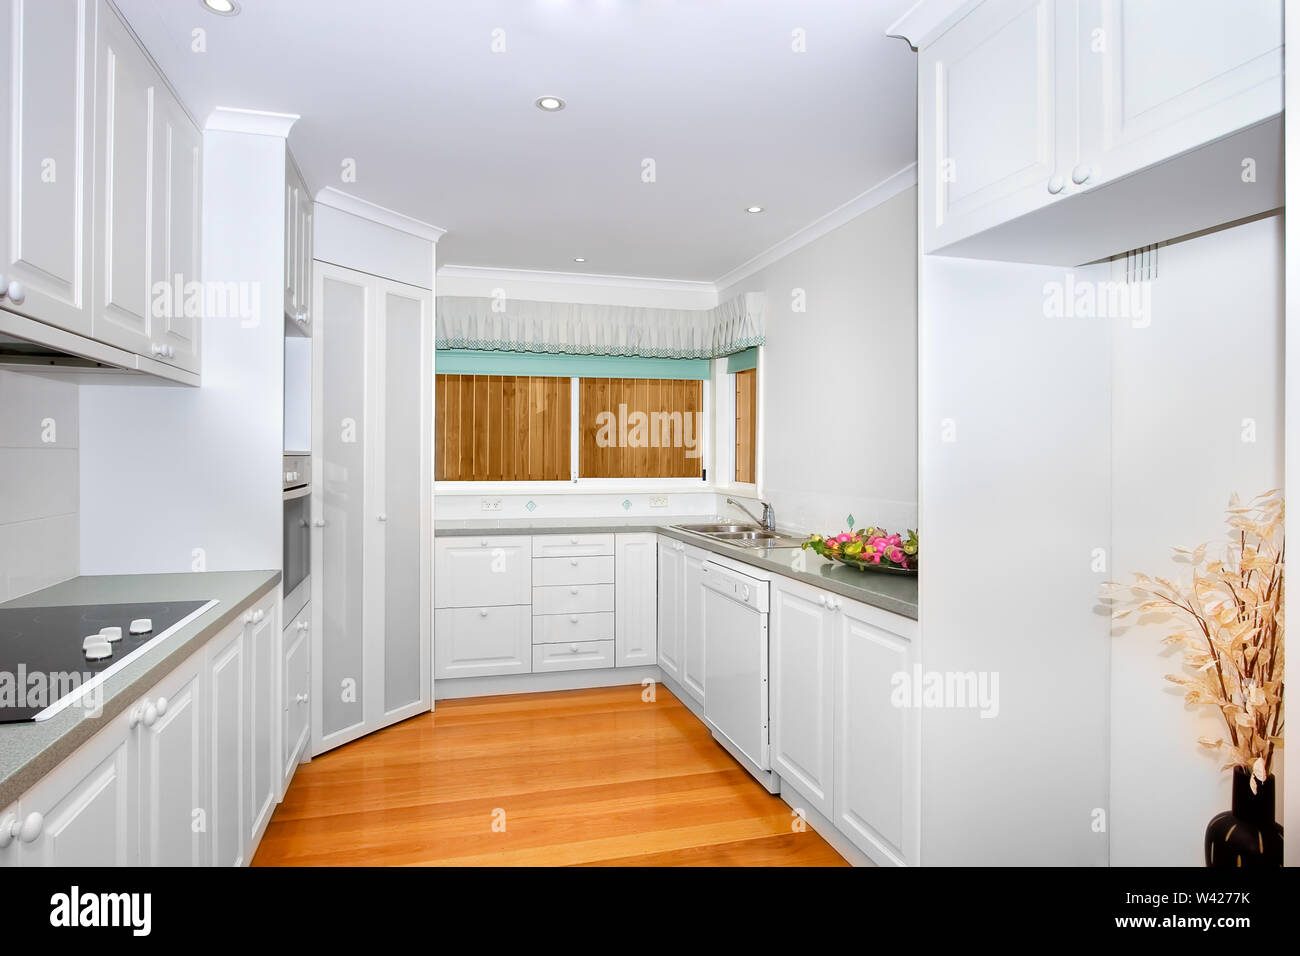 Empty White Kitchen With Wooden Floor Electric Stove Some